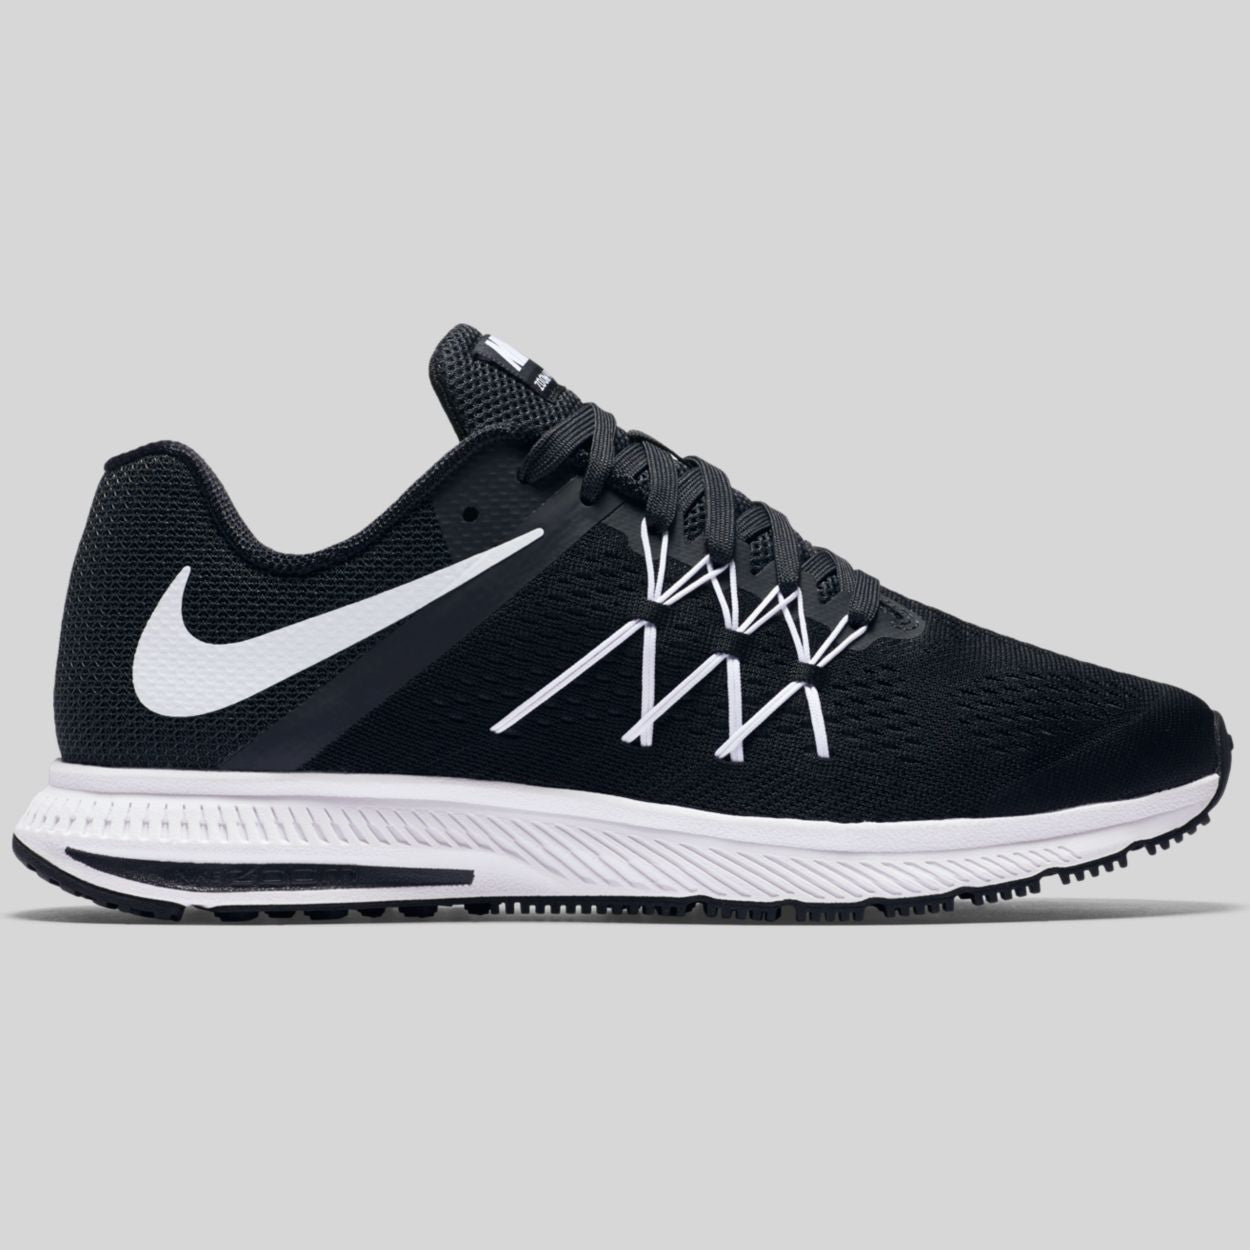 Nike Zoom Winflo 3 Black White Anthracite (831561-001)